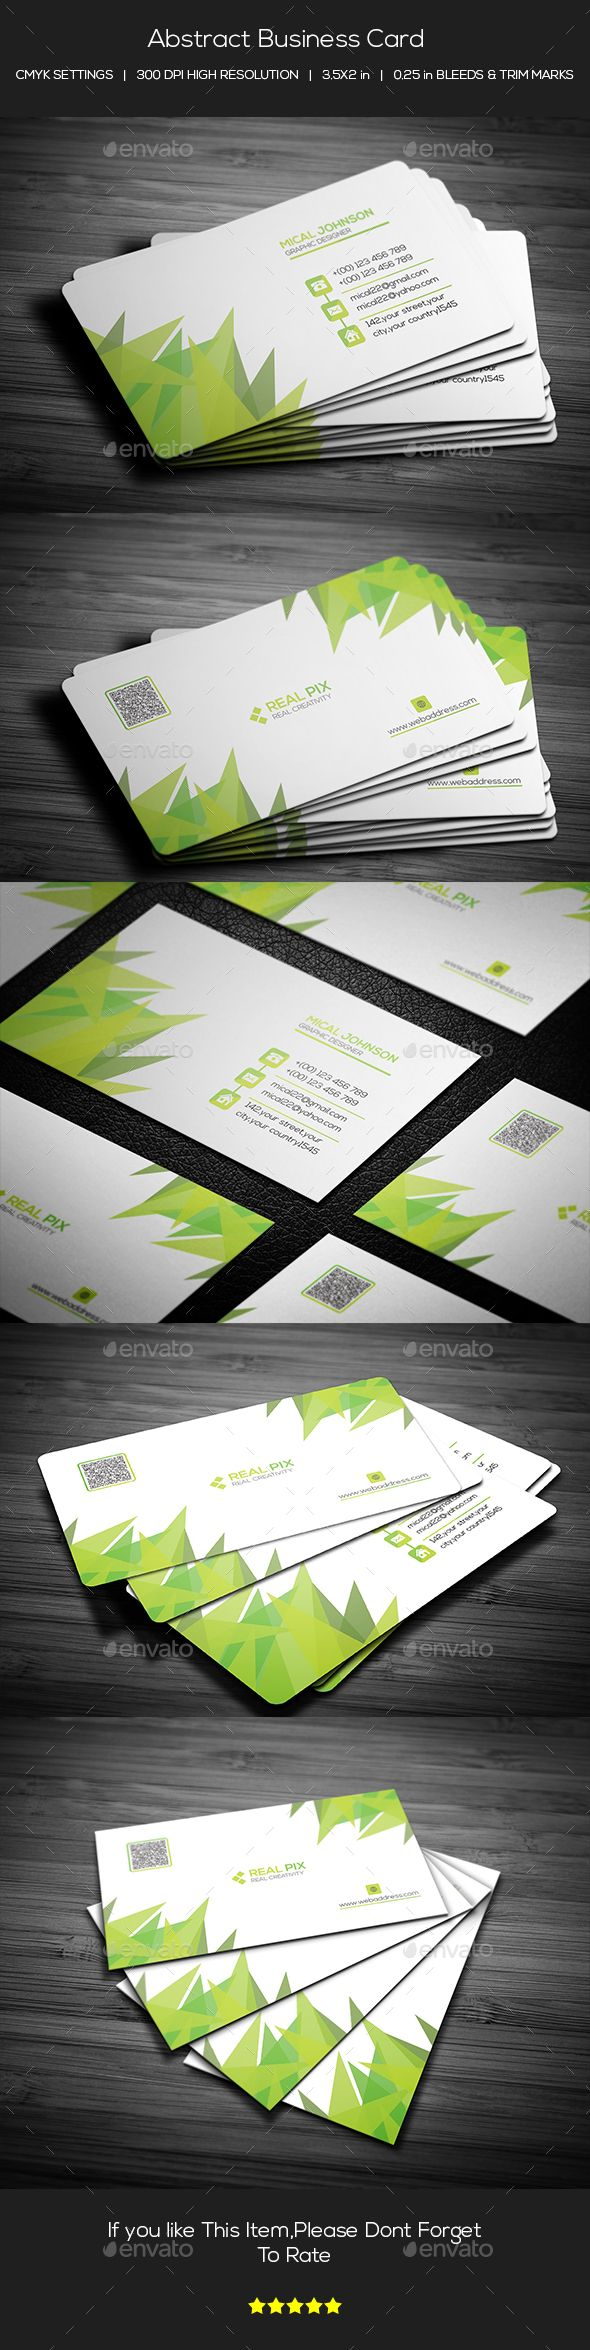 229 best Business Card images on Pinterest | Business card design ...